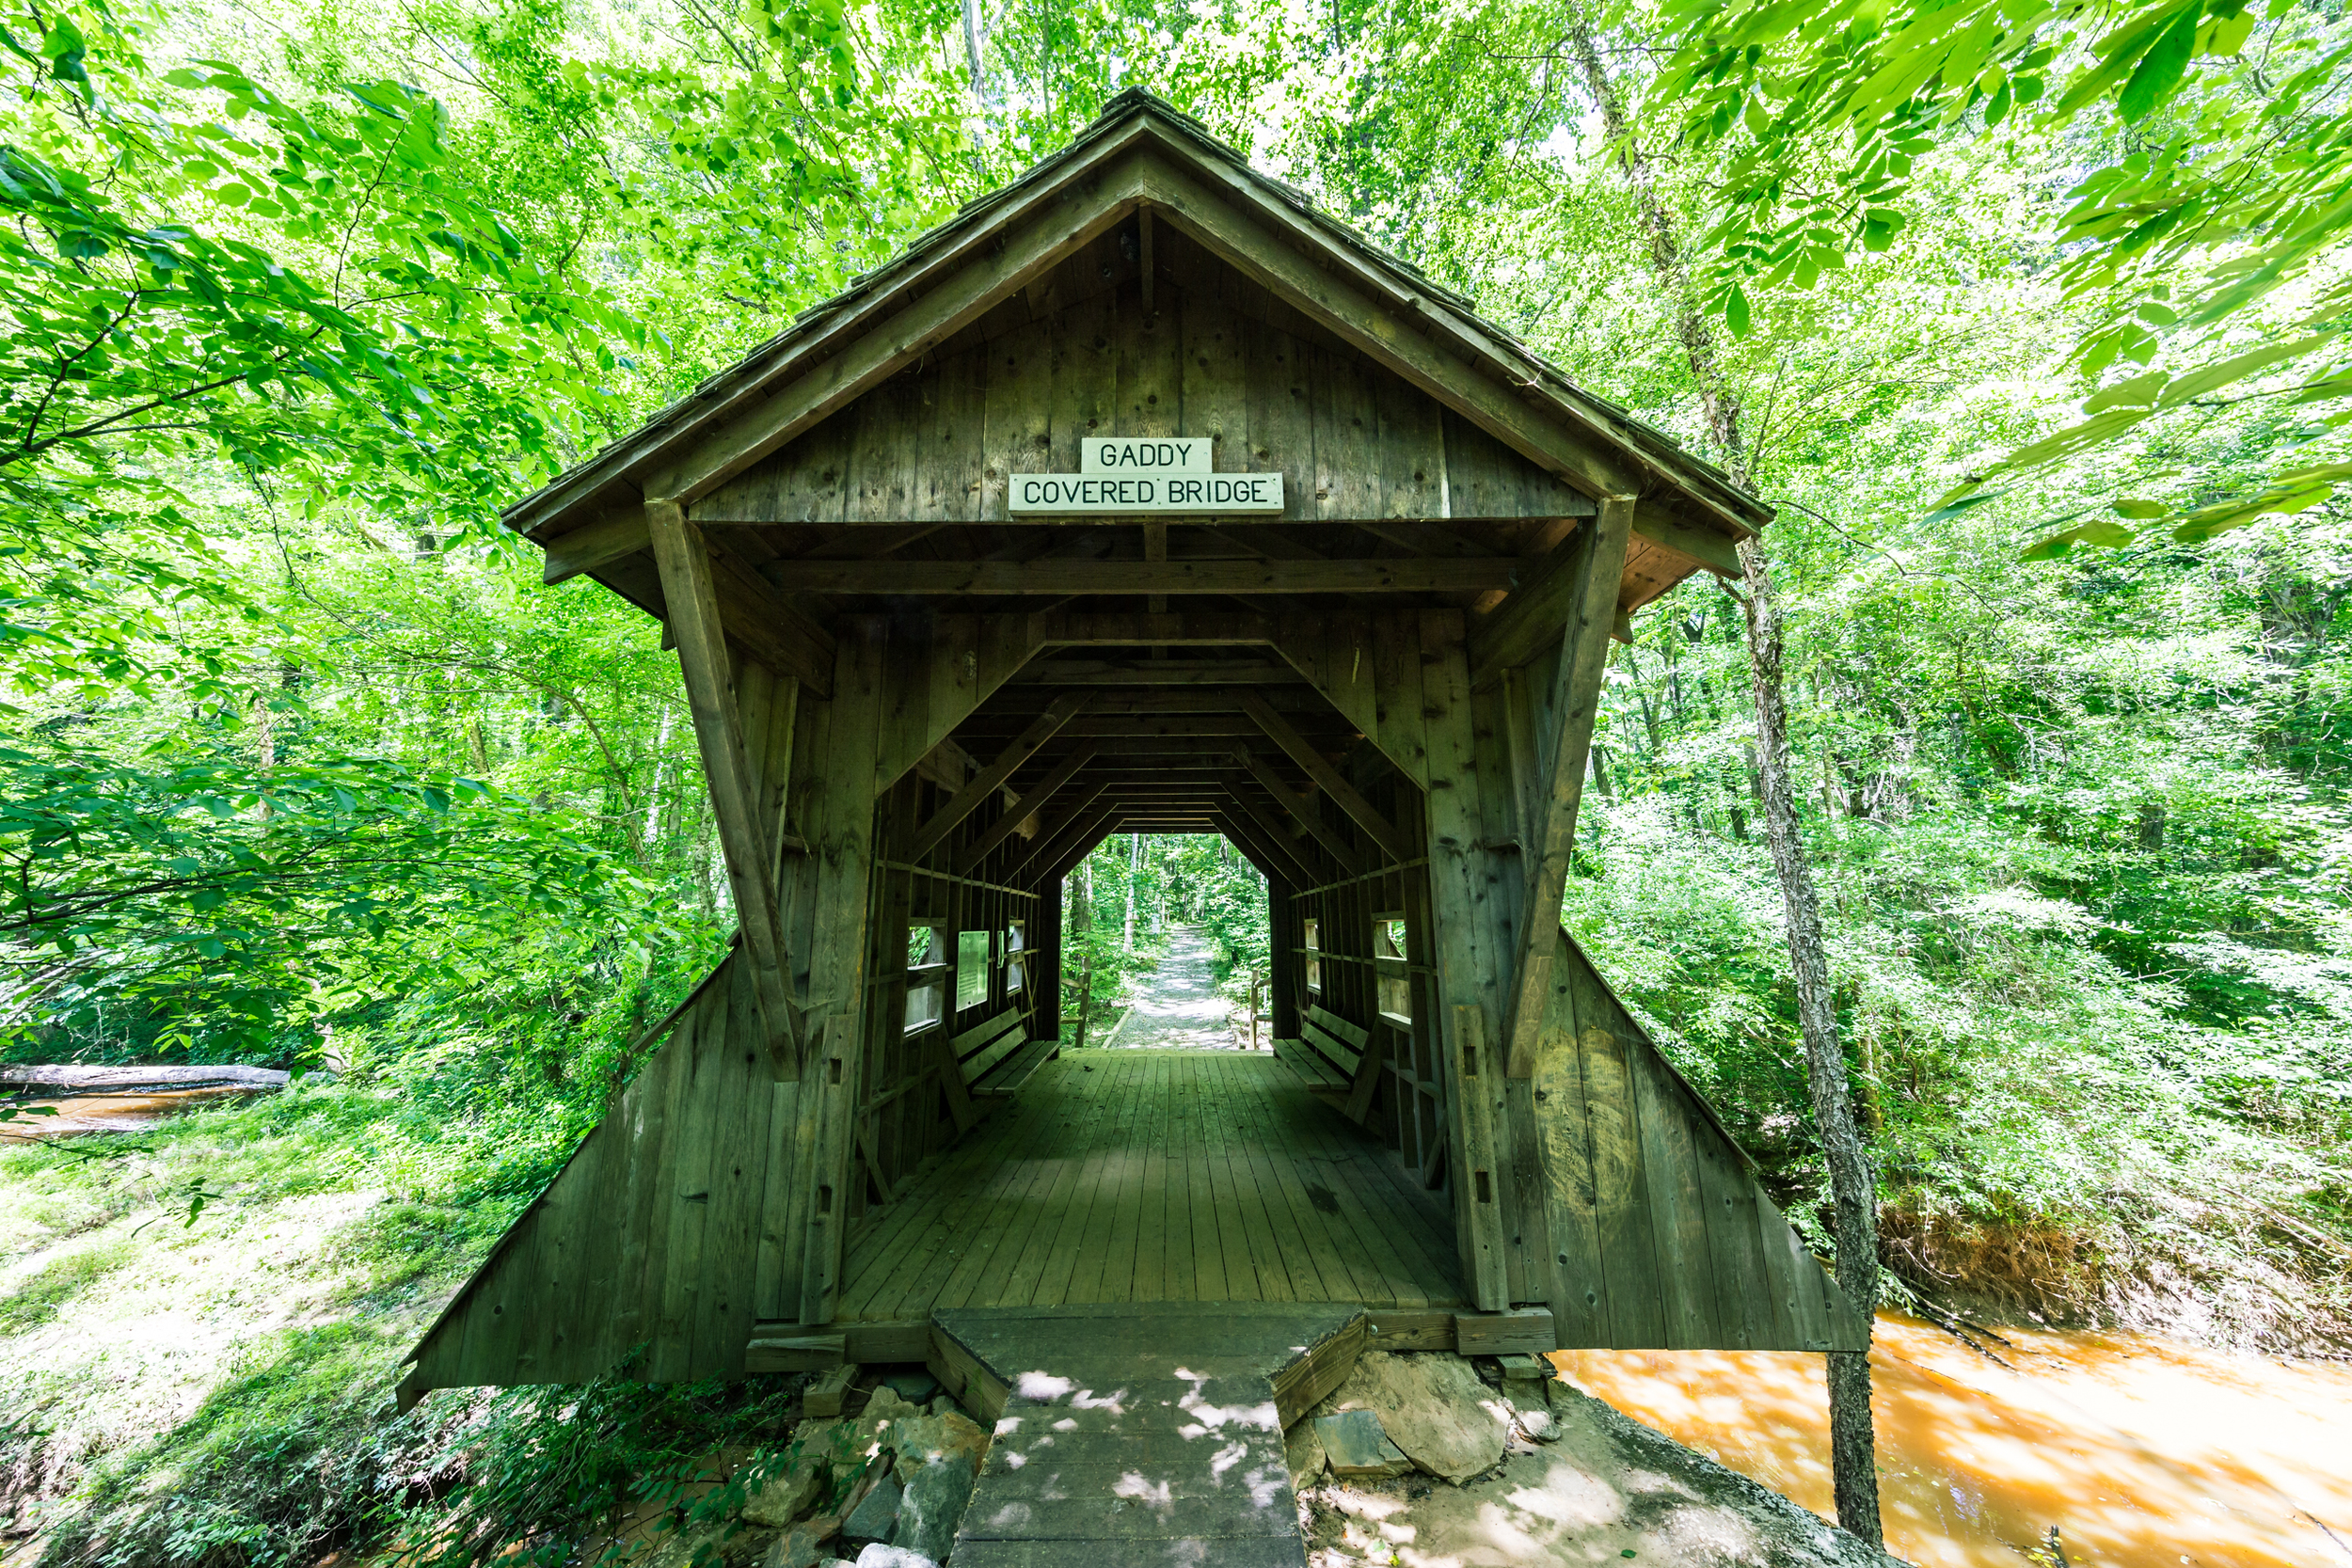 ©jennifer bailey 2015 gaddy covered bridge